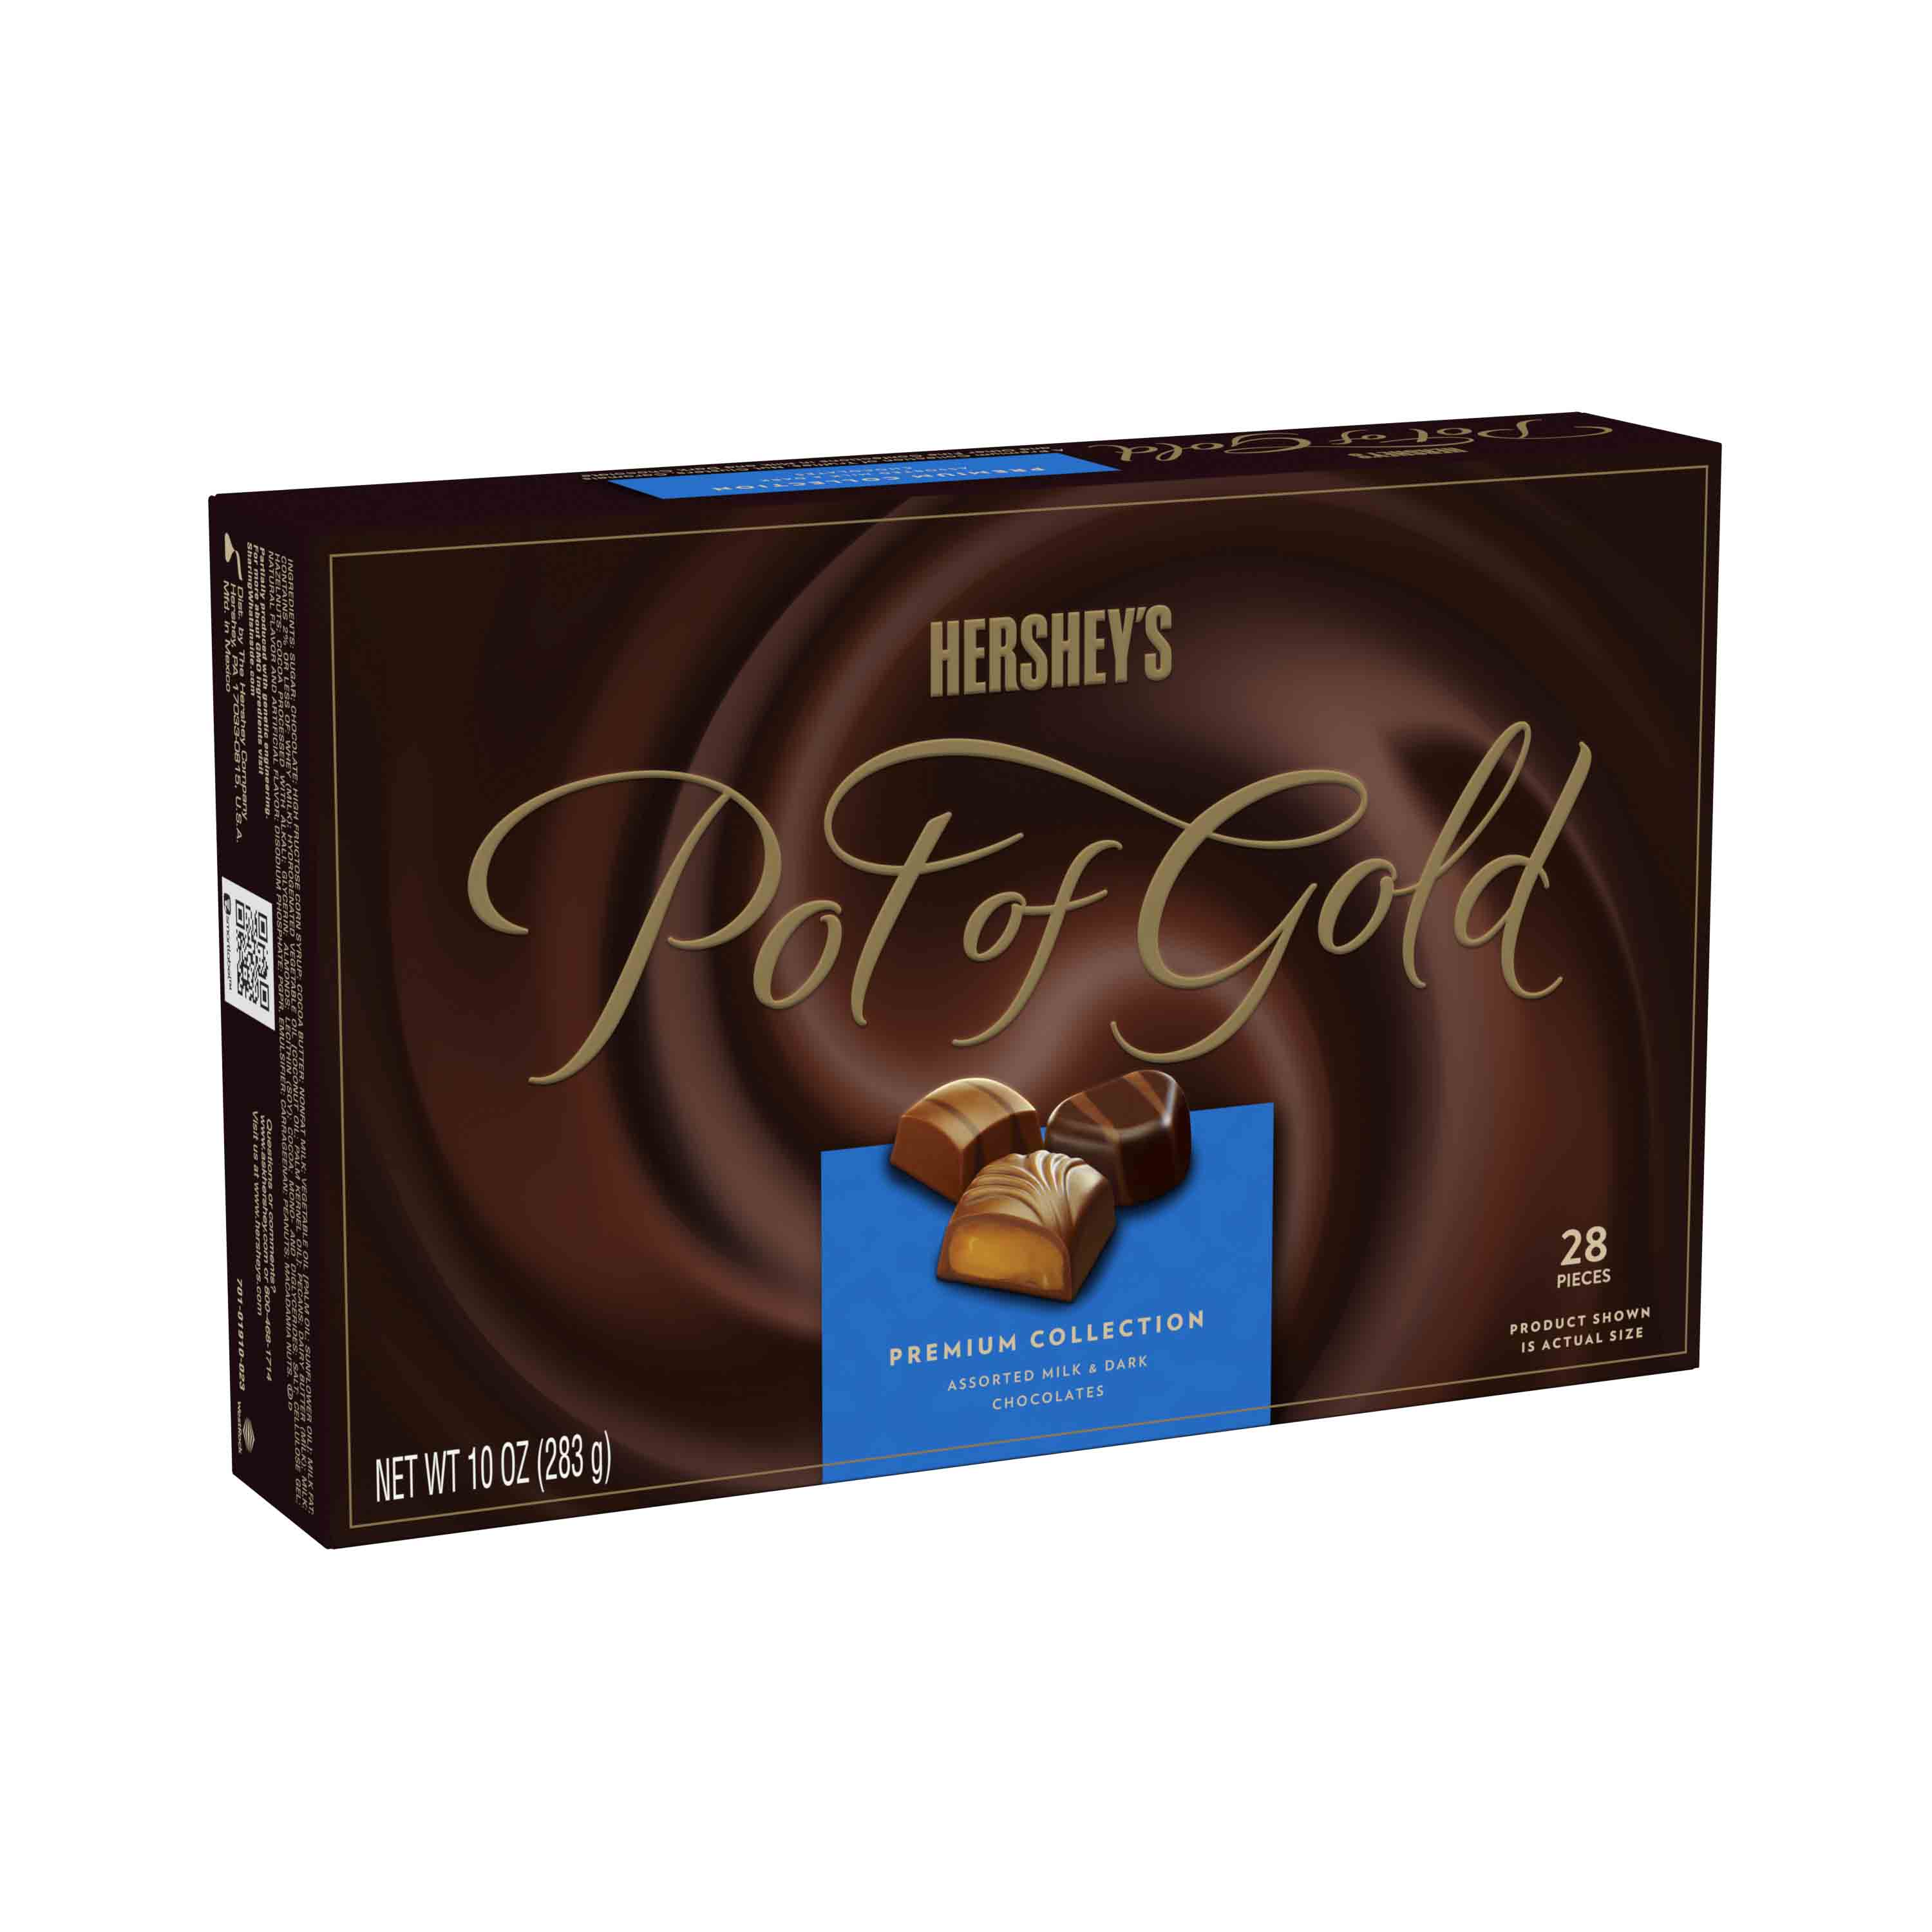 Hershey's Pot of Gold, Assorted Chocolate Premium Collection, 10 oz - Online Only